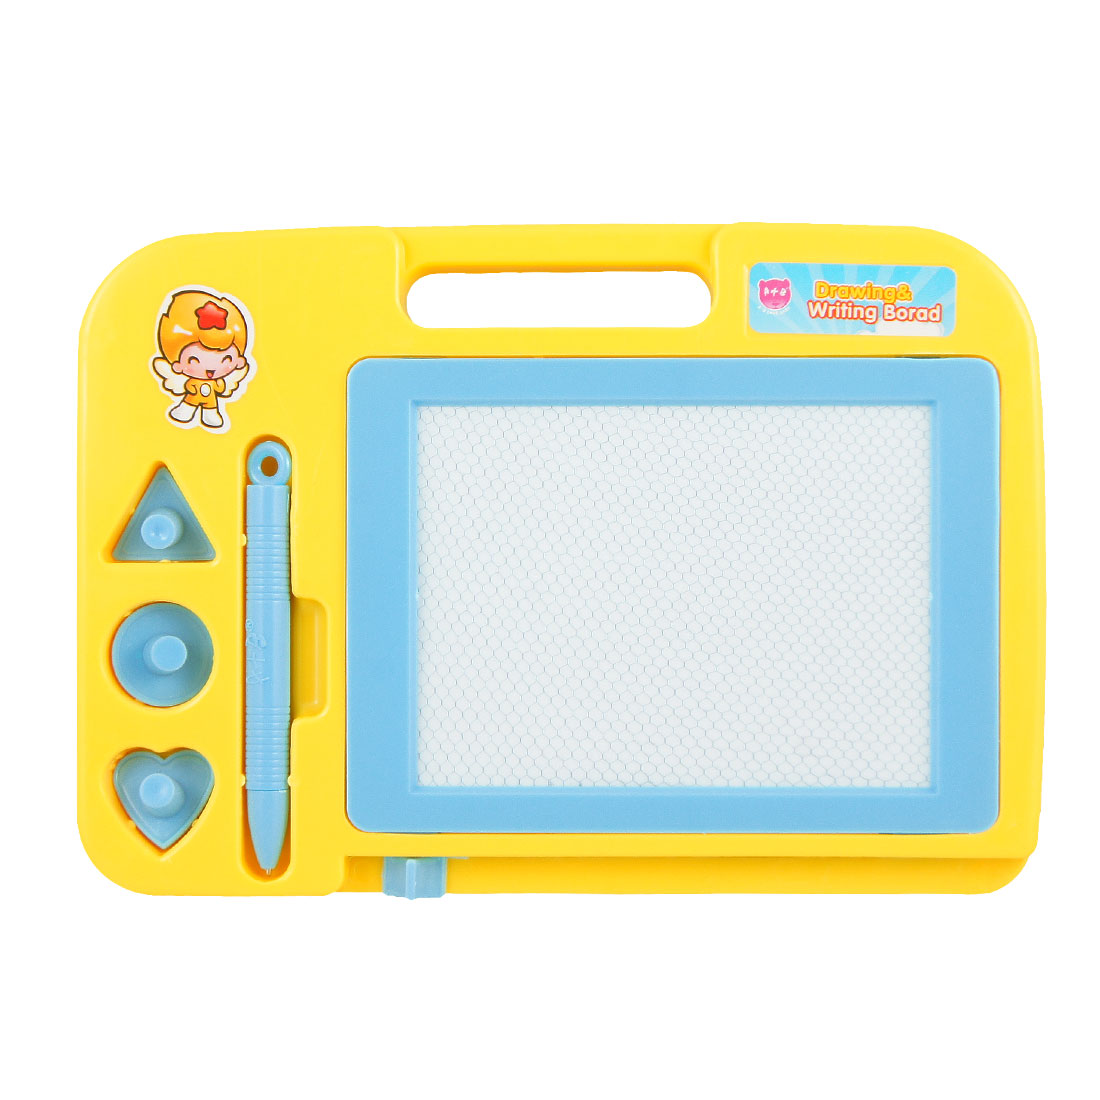 Child Yellow Plastic Rectangular Double Sides Magnetic Drawing Writing Sketch Board